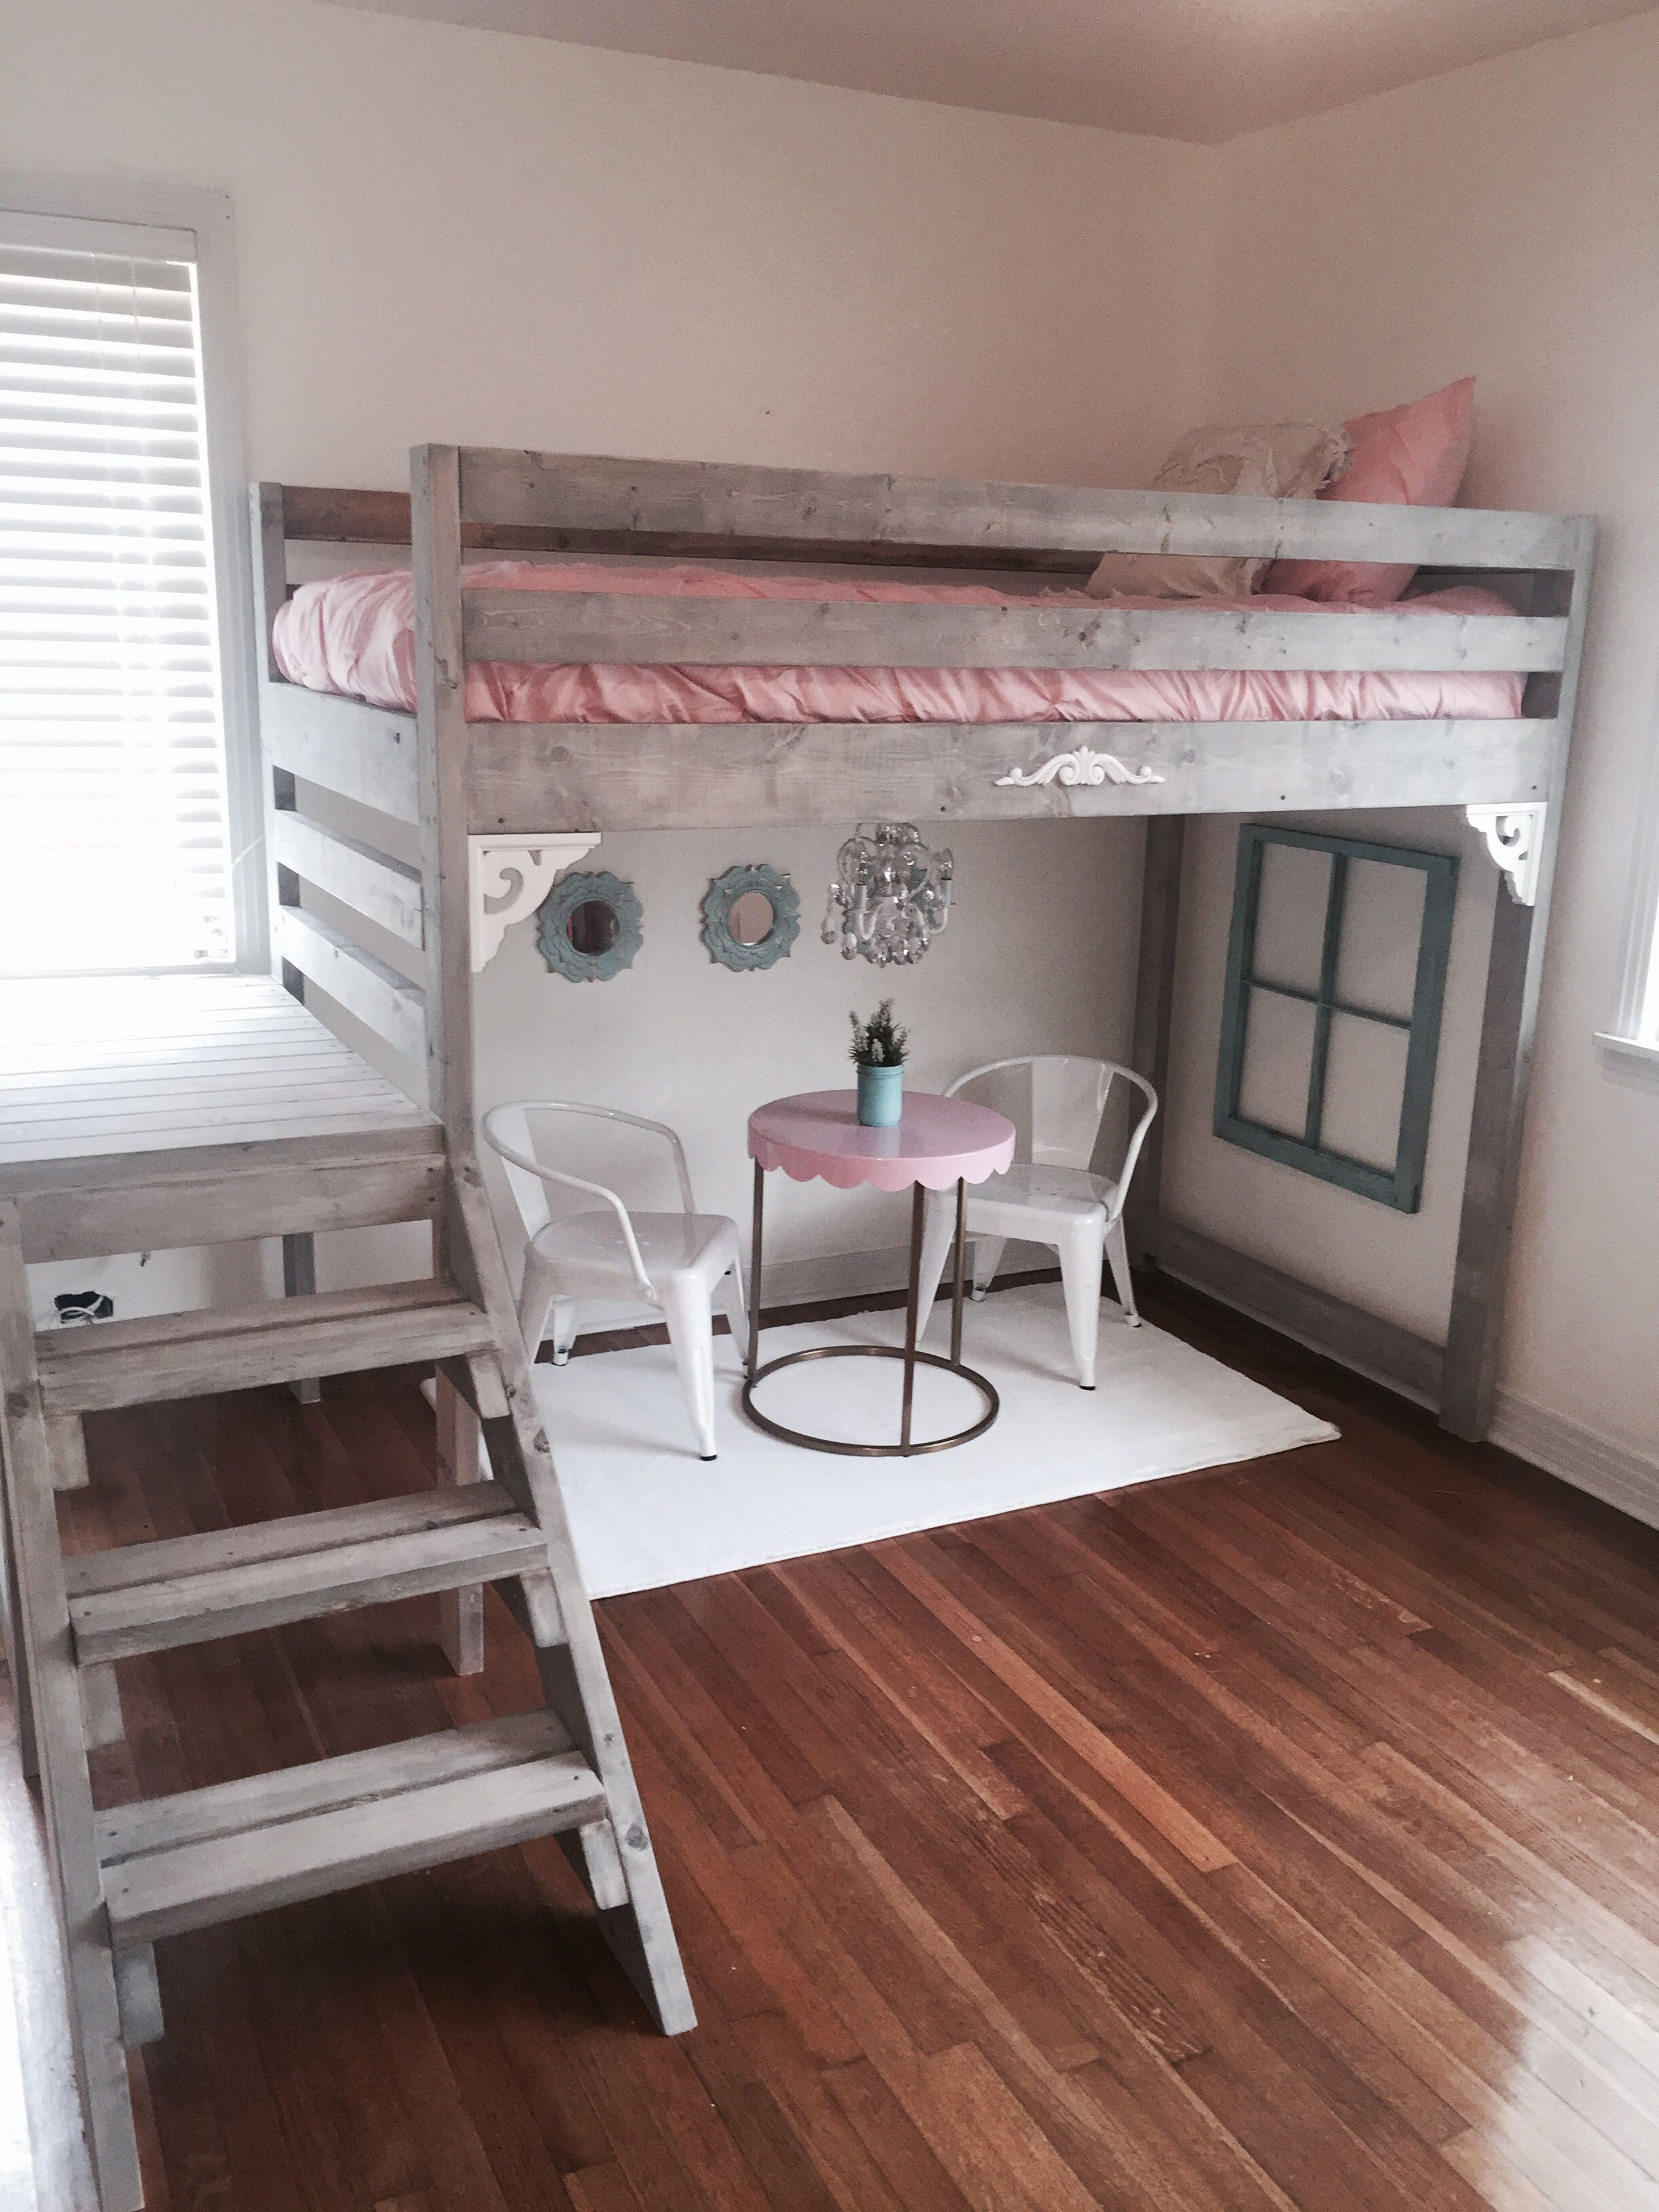 carolina kids ja cool works tent inc and teen paint ideas bed modern play king girl bedroom with apart for two heart twin canopy hammock wood indoor by beds wayfair to sets bedrooms clipgoo reviews cottage storage hanging furniture colors pinterest